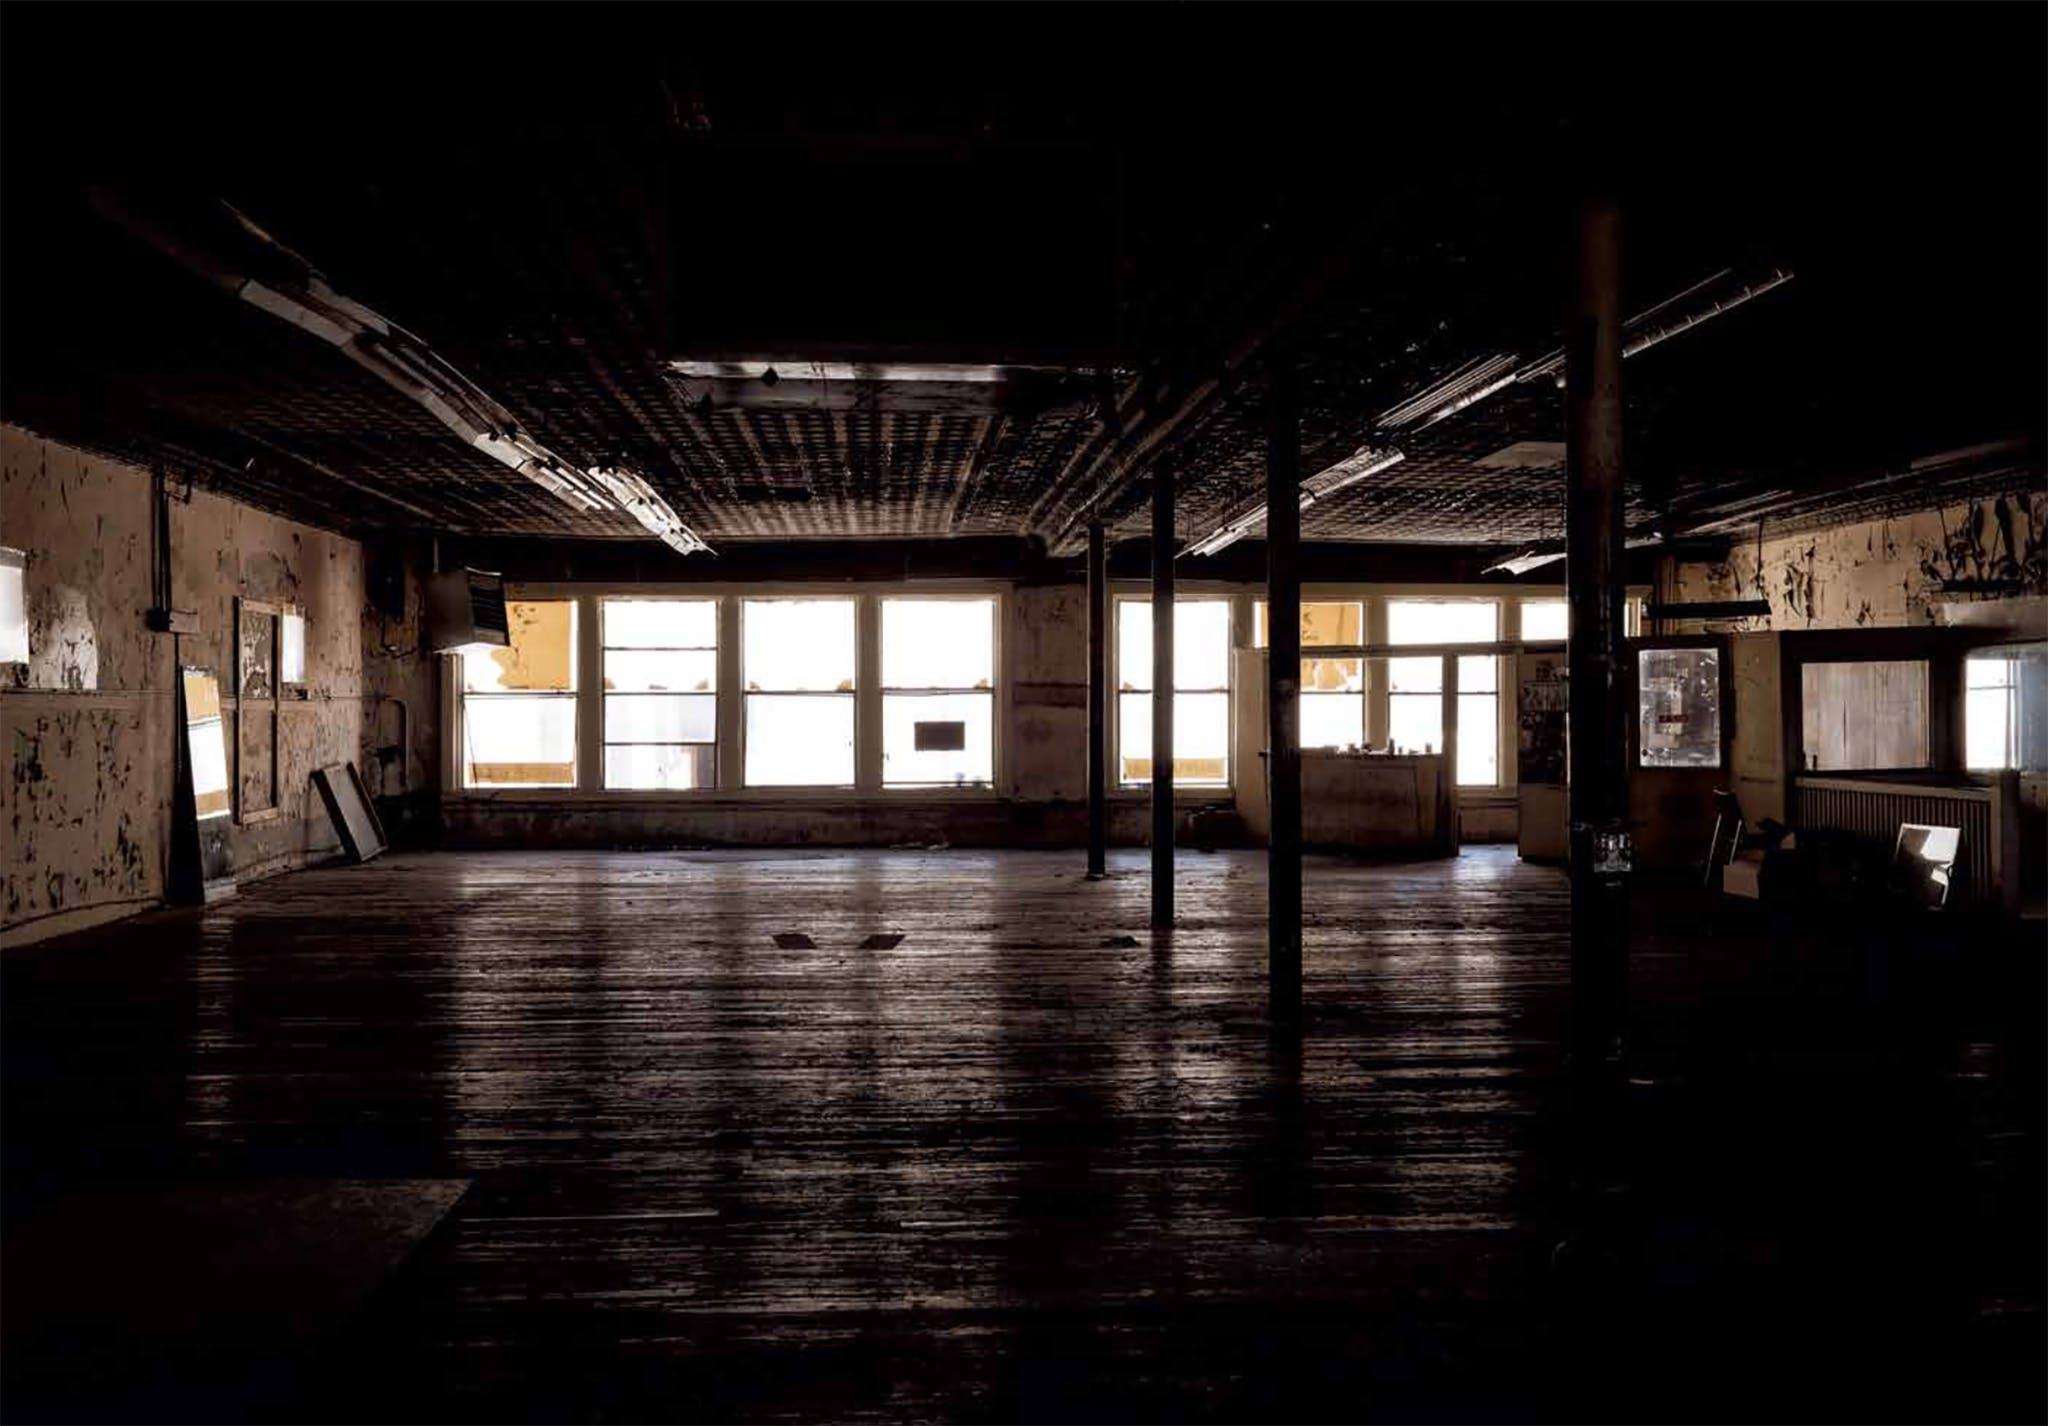 Diamond's final photo of the gym, taken on April 16, 2018, reveals the first time the space on Commerce Street had been empty since September 1962. A few of the regulars, including one old-timer who'd been working out there from the beginning, showed up to say goodbye as the last of the equipment was being dismantled. They came to show their appreciation for Eidd and for a place aggressively unconcerned with staying up to date, a place that helped people better themselves even as it continued to deteriorate. Eidd, now 89, had the equipment moved to the backyard of the home he shares with one of his sons, an hour outside of Forth Worth. In the warmer weather, some of Doug's regulars stop by, work out, catch up. Downtown Dallas continues to change but the second-floor space that once held Doug's Gym sits empty. The sign still hangs where it always has, over the street, seemingly weightless.